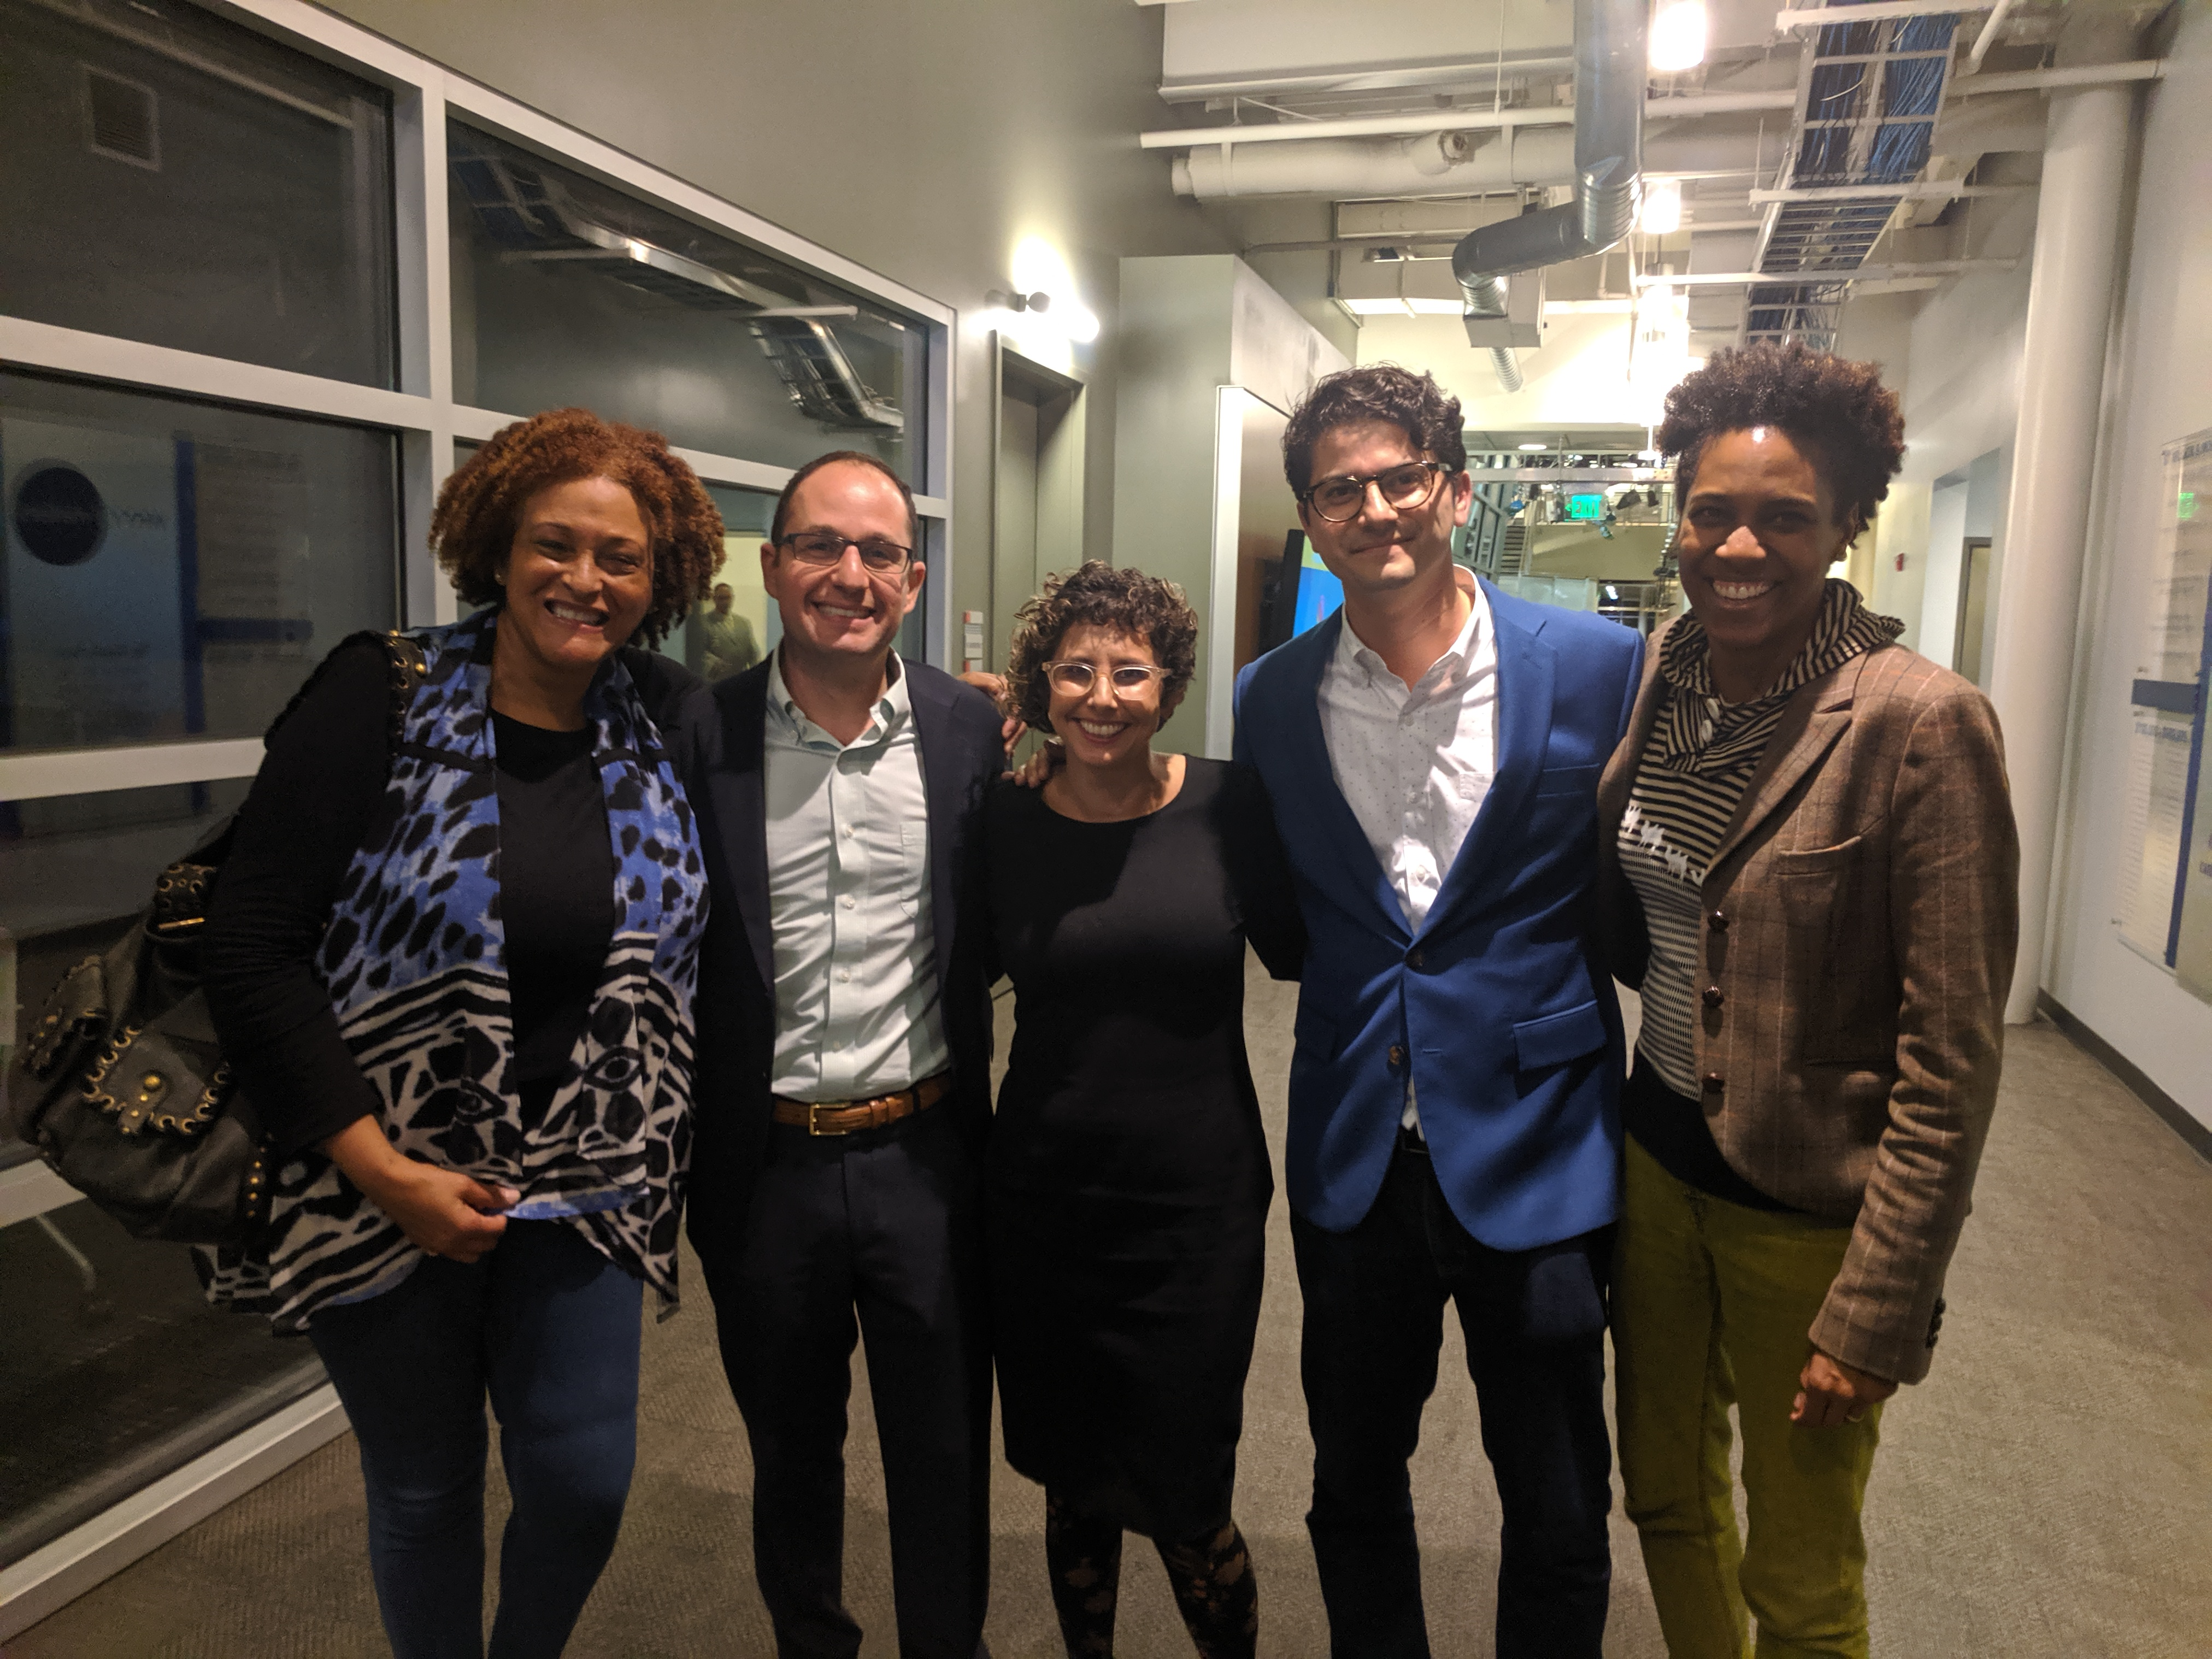 PlanPhilly Panel Discussion - October 22, 2019